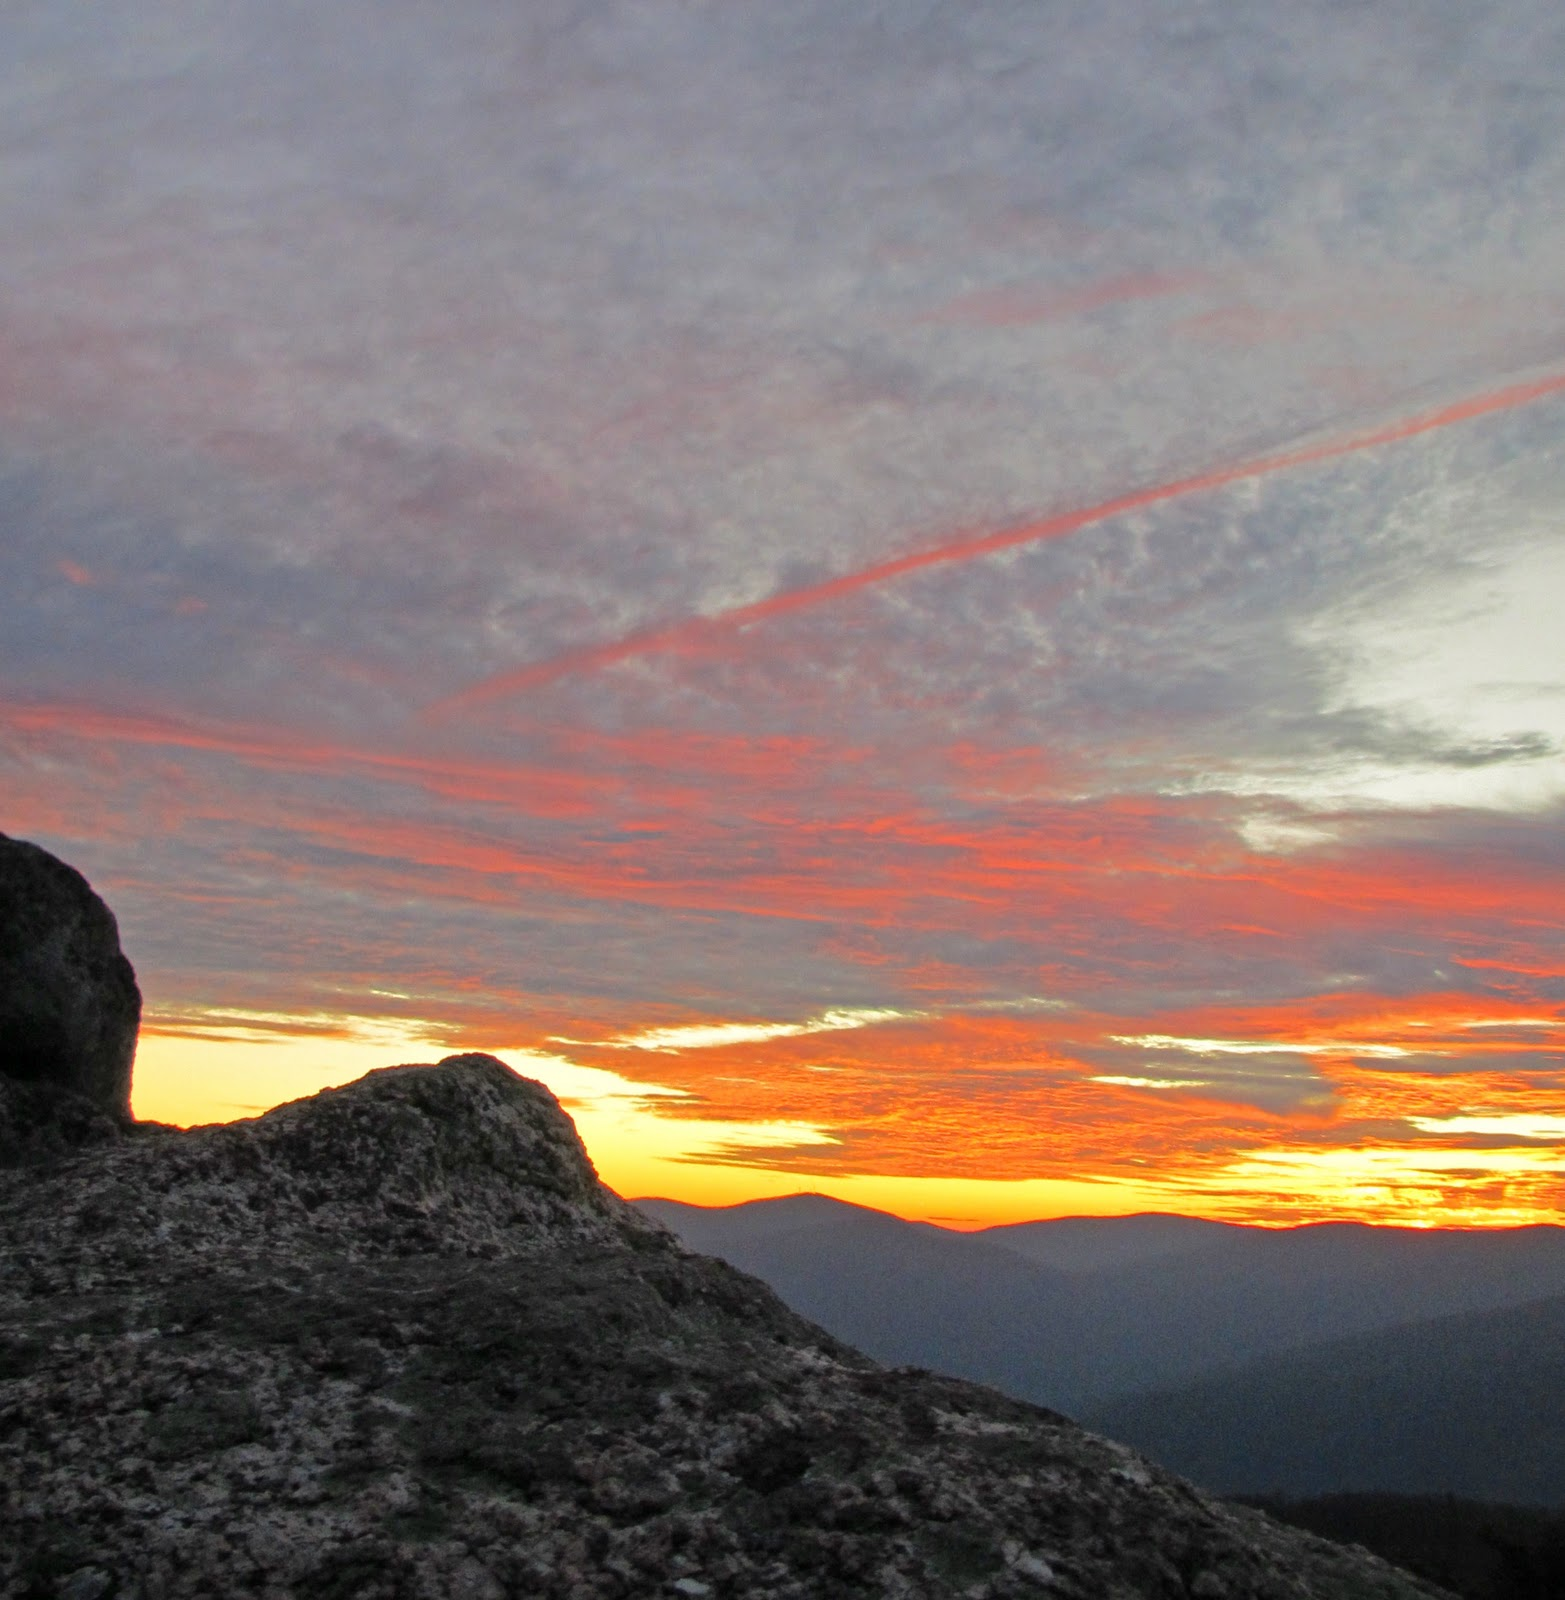 Temperature At Old Rag Mountain: Old Rag Mountain Hikes/Patrols By RSL: Dec 3&4 Old Rag